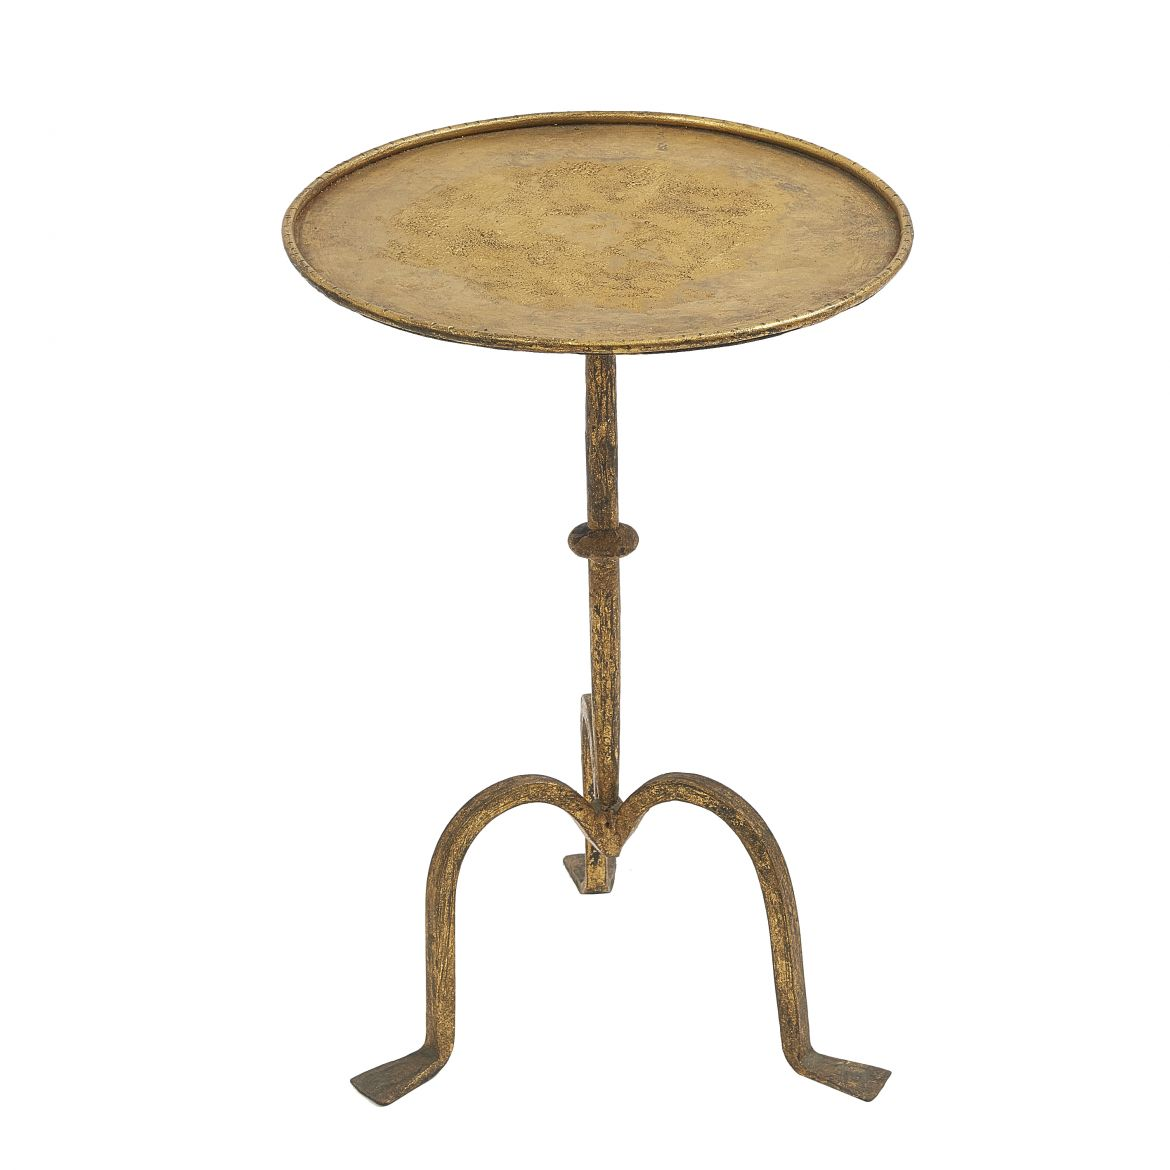 Gilt Iron Table